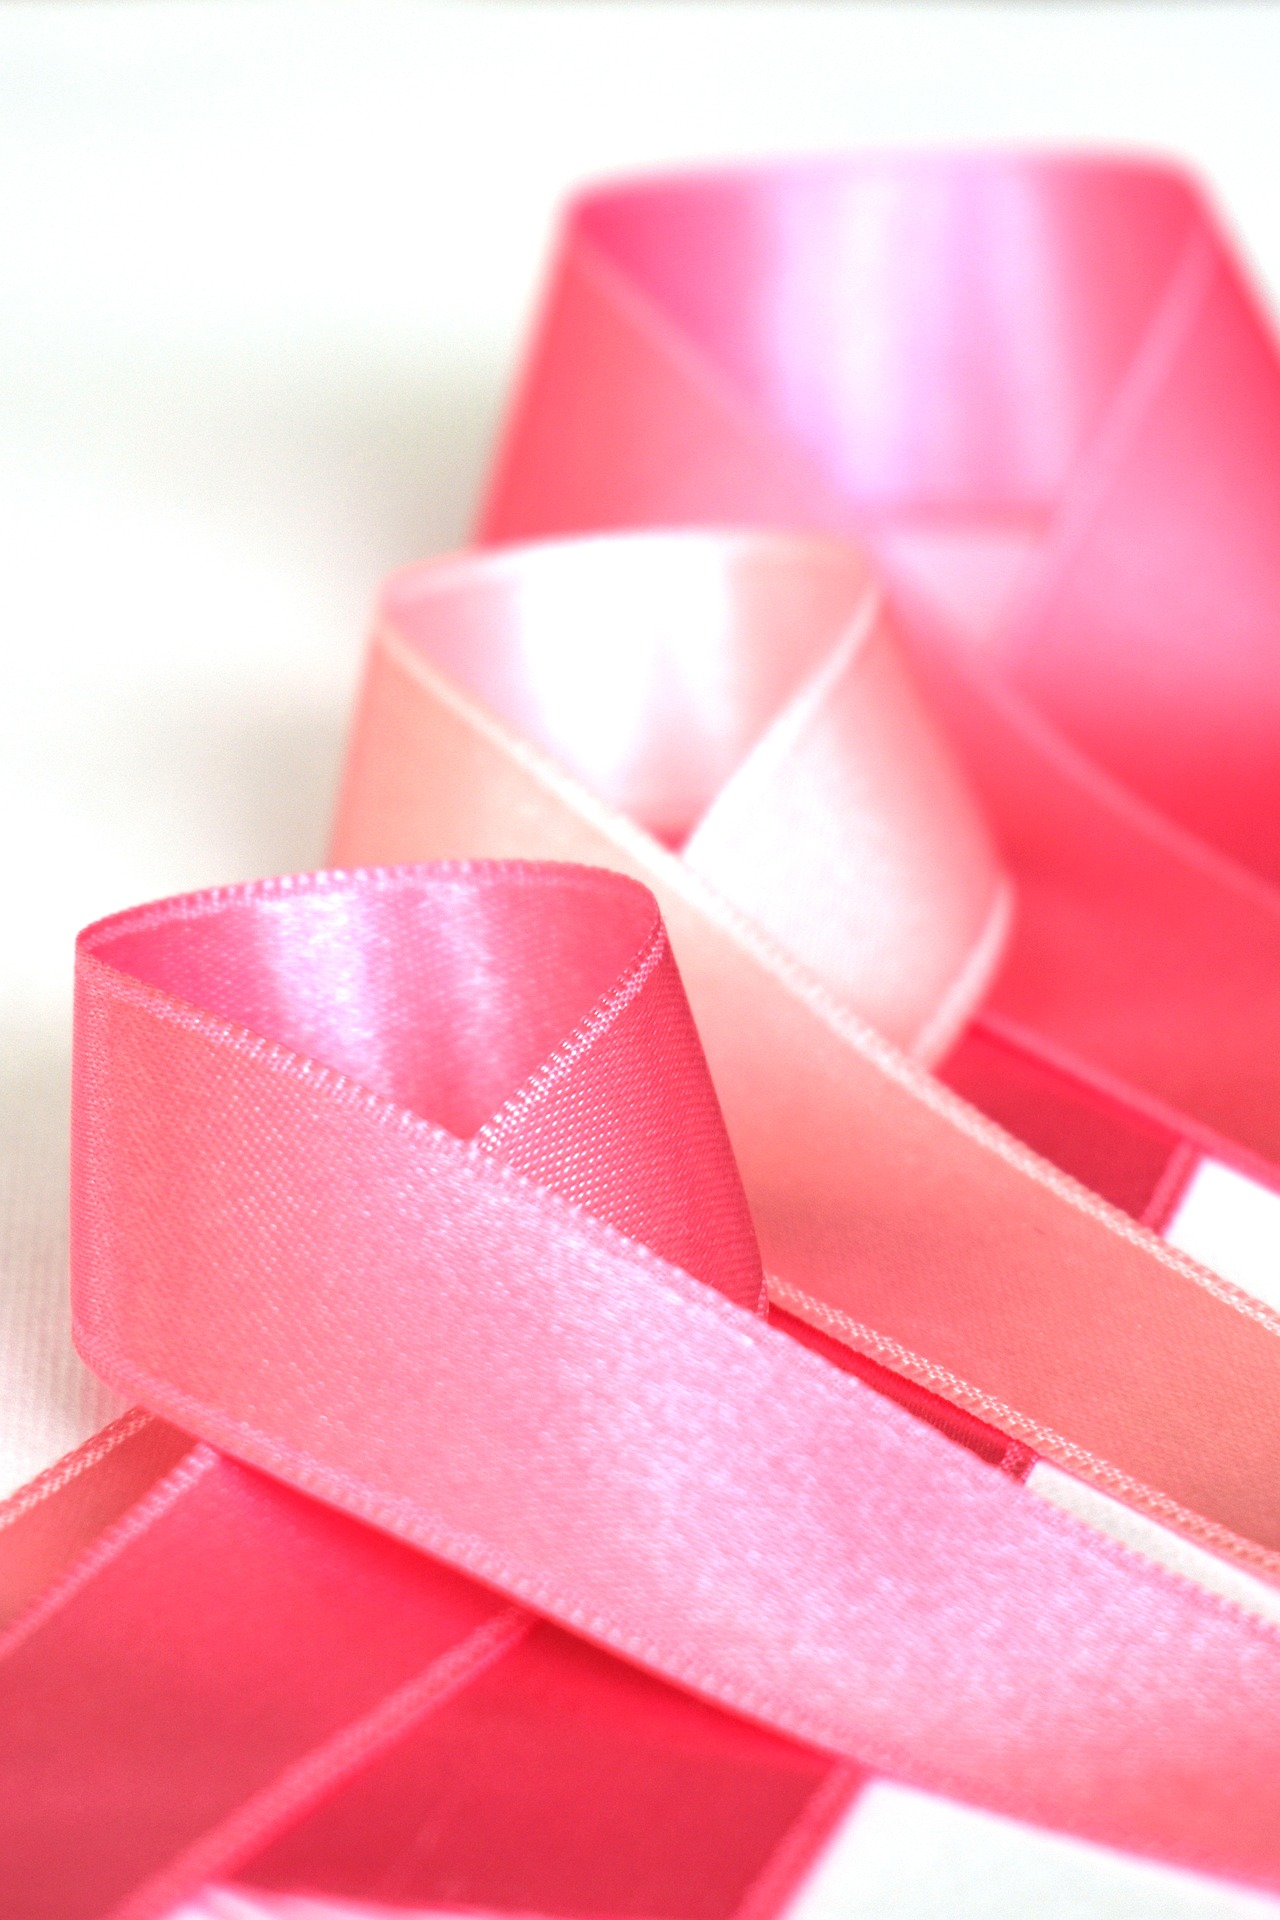 Breast cancer natural treatments and integrative resources.